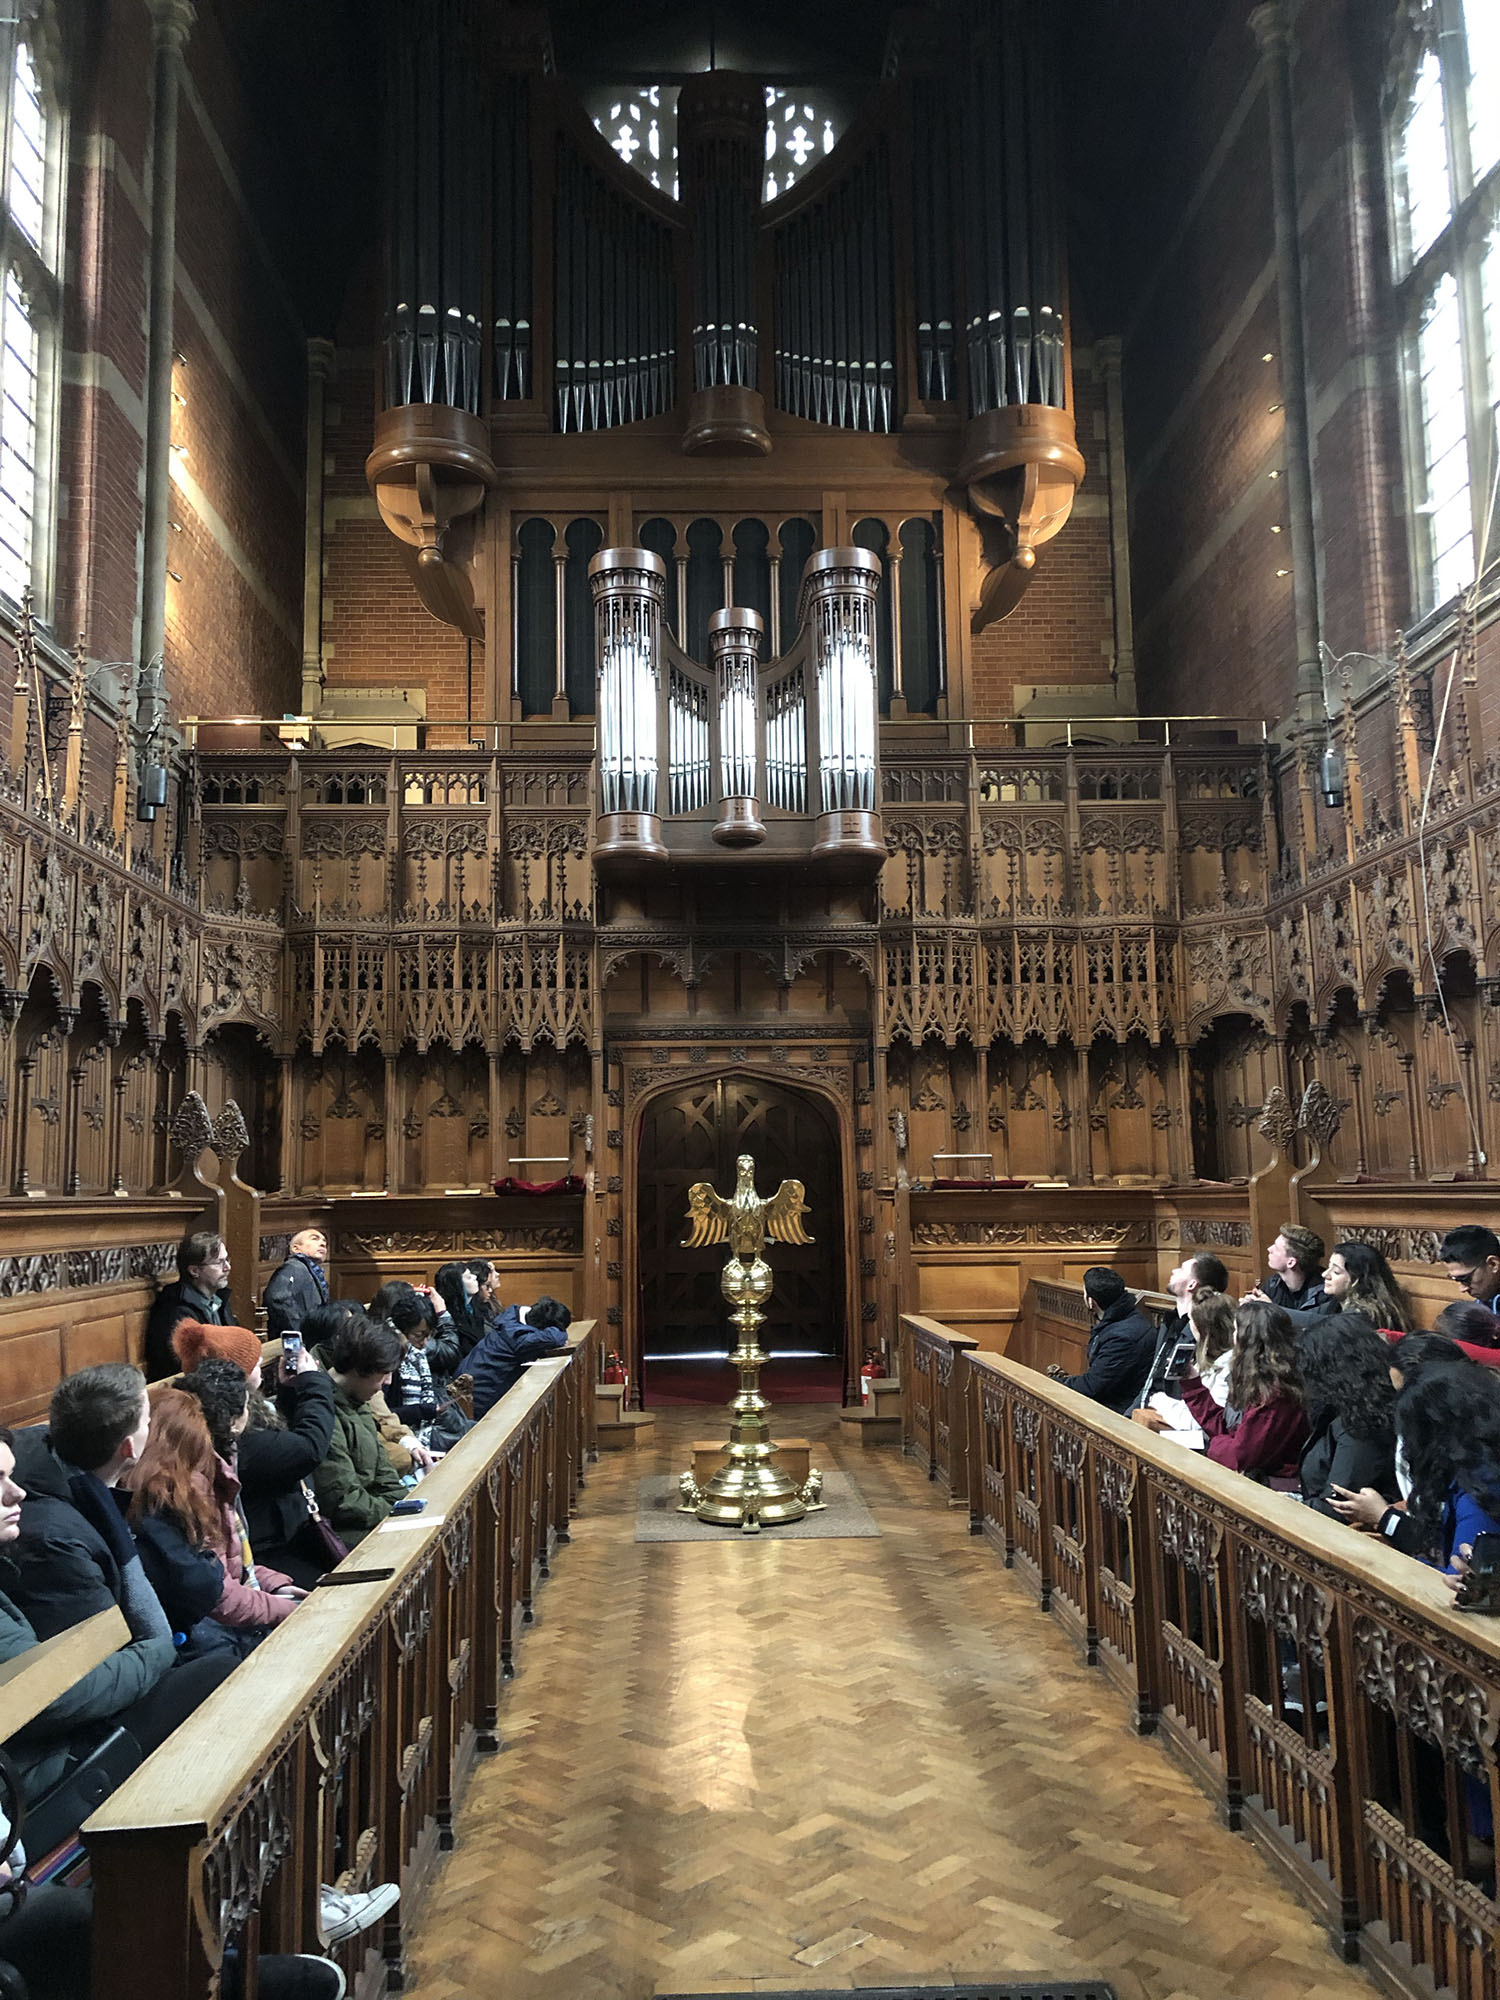 Fresno State students sit and listen to Sarah MacDonald play the organ for them in the Selwyn College Chapel.